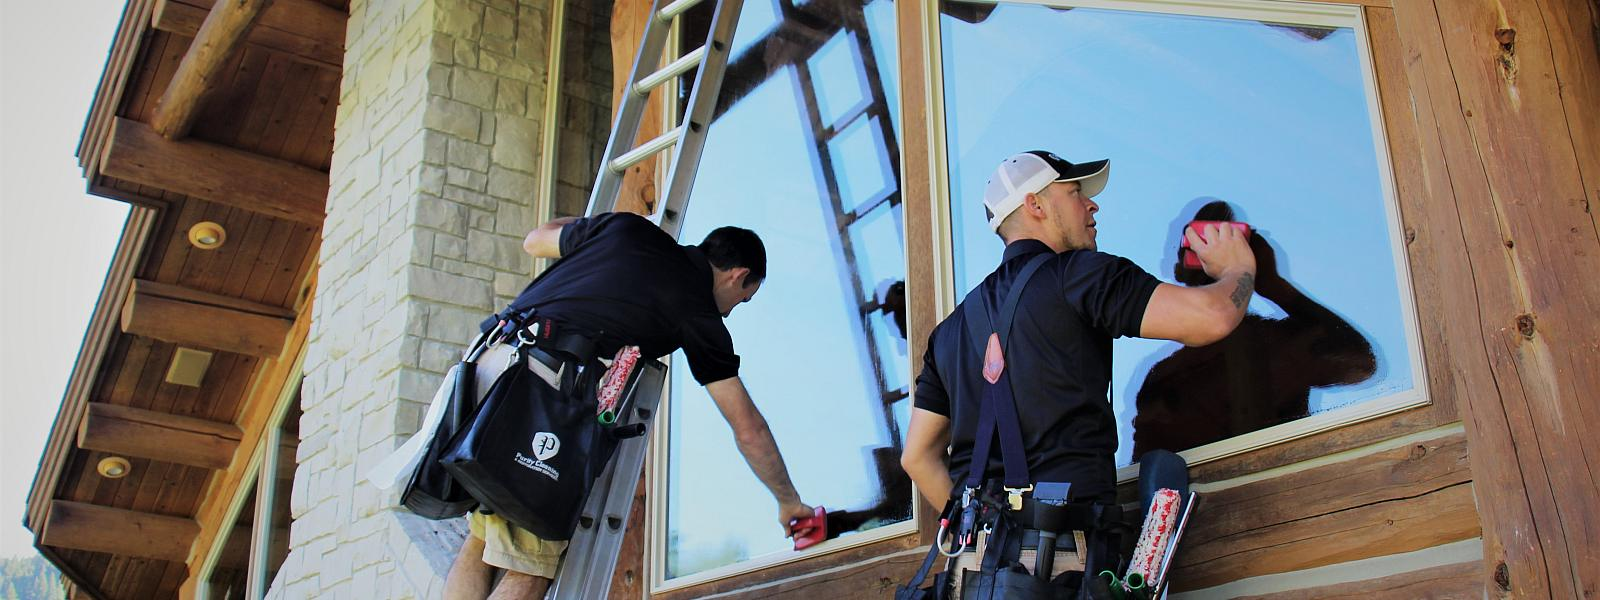 Purity Cleaning team washing exterior windows on a log cabin in Bitterroot Valley Mt